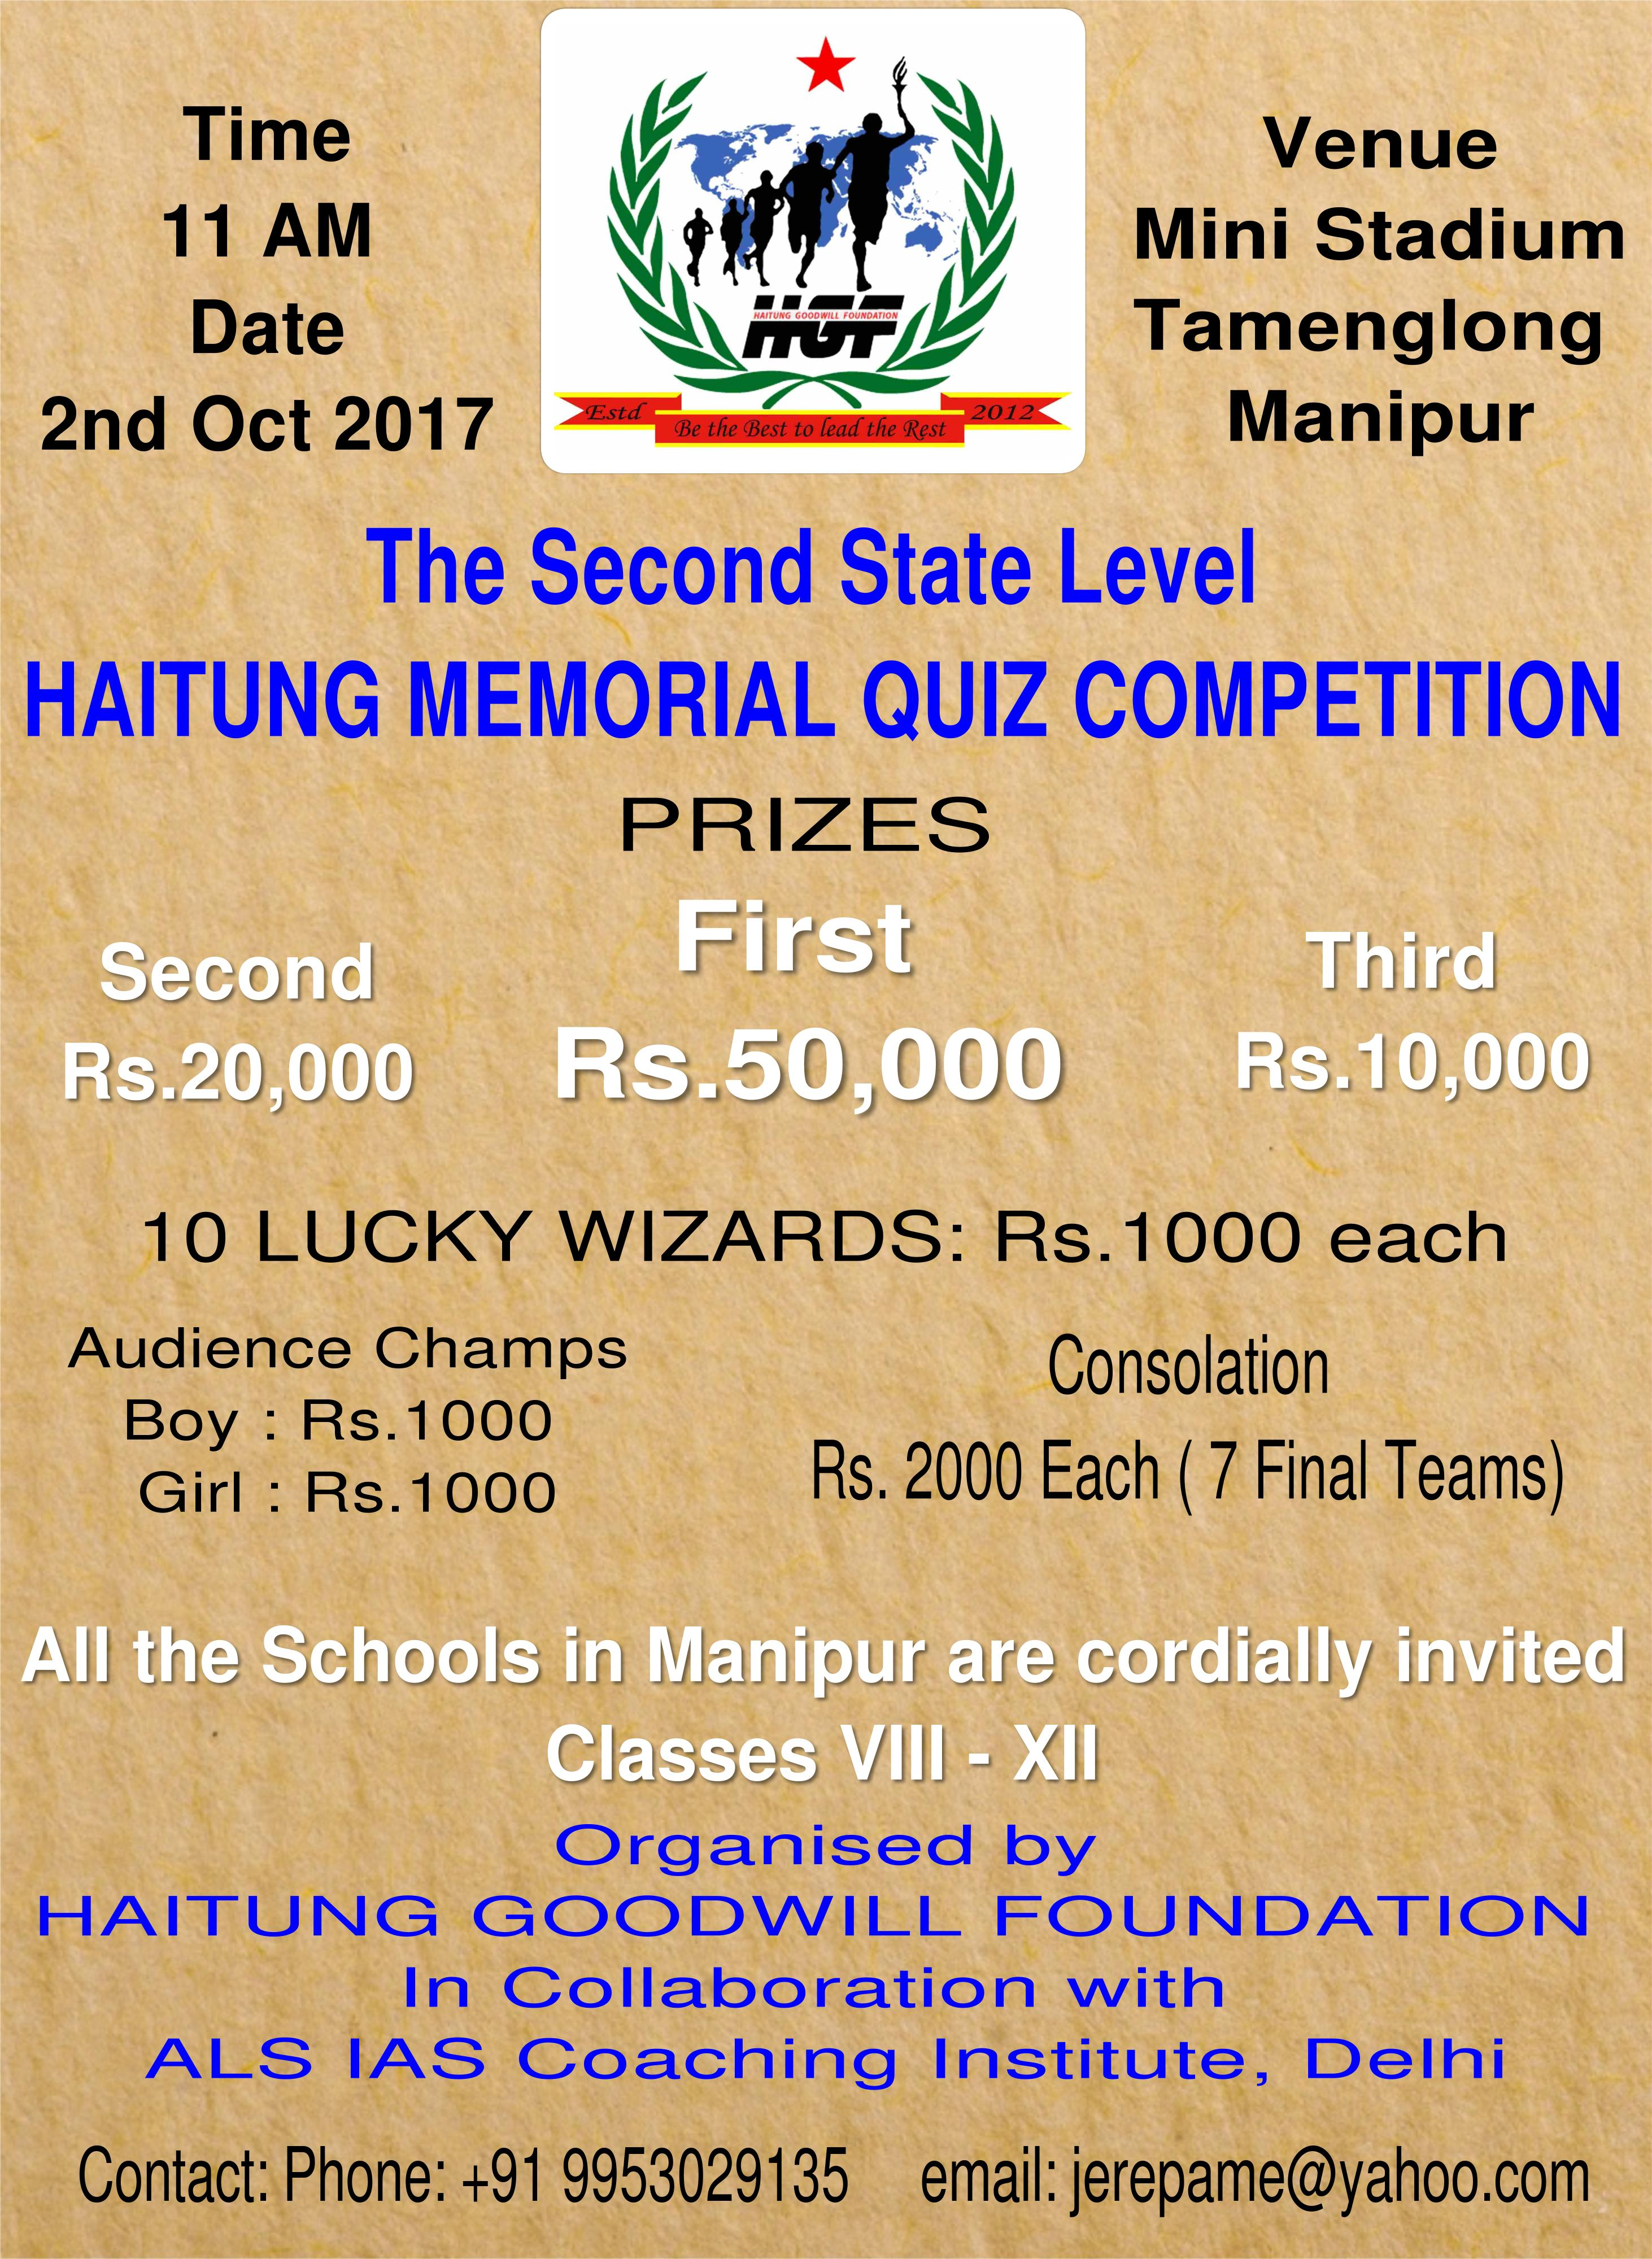 The Second State Level HAITUNG MEMORIAL QUIZ COMPETITION